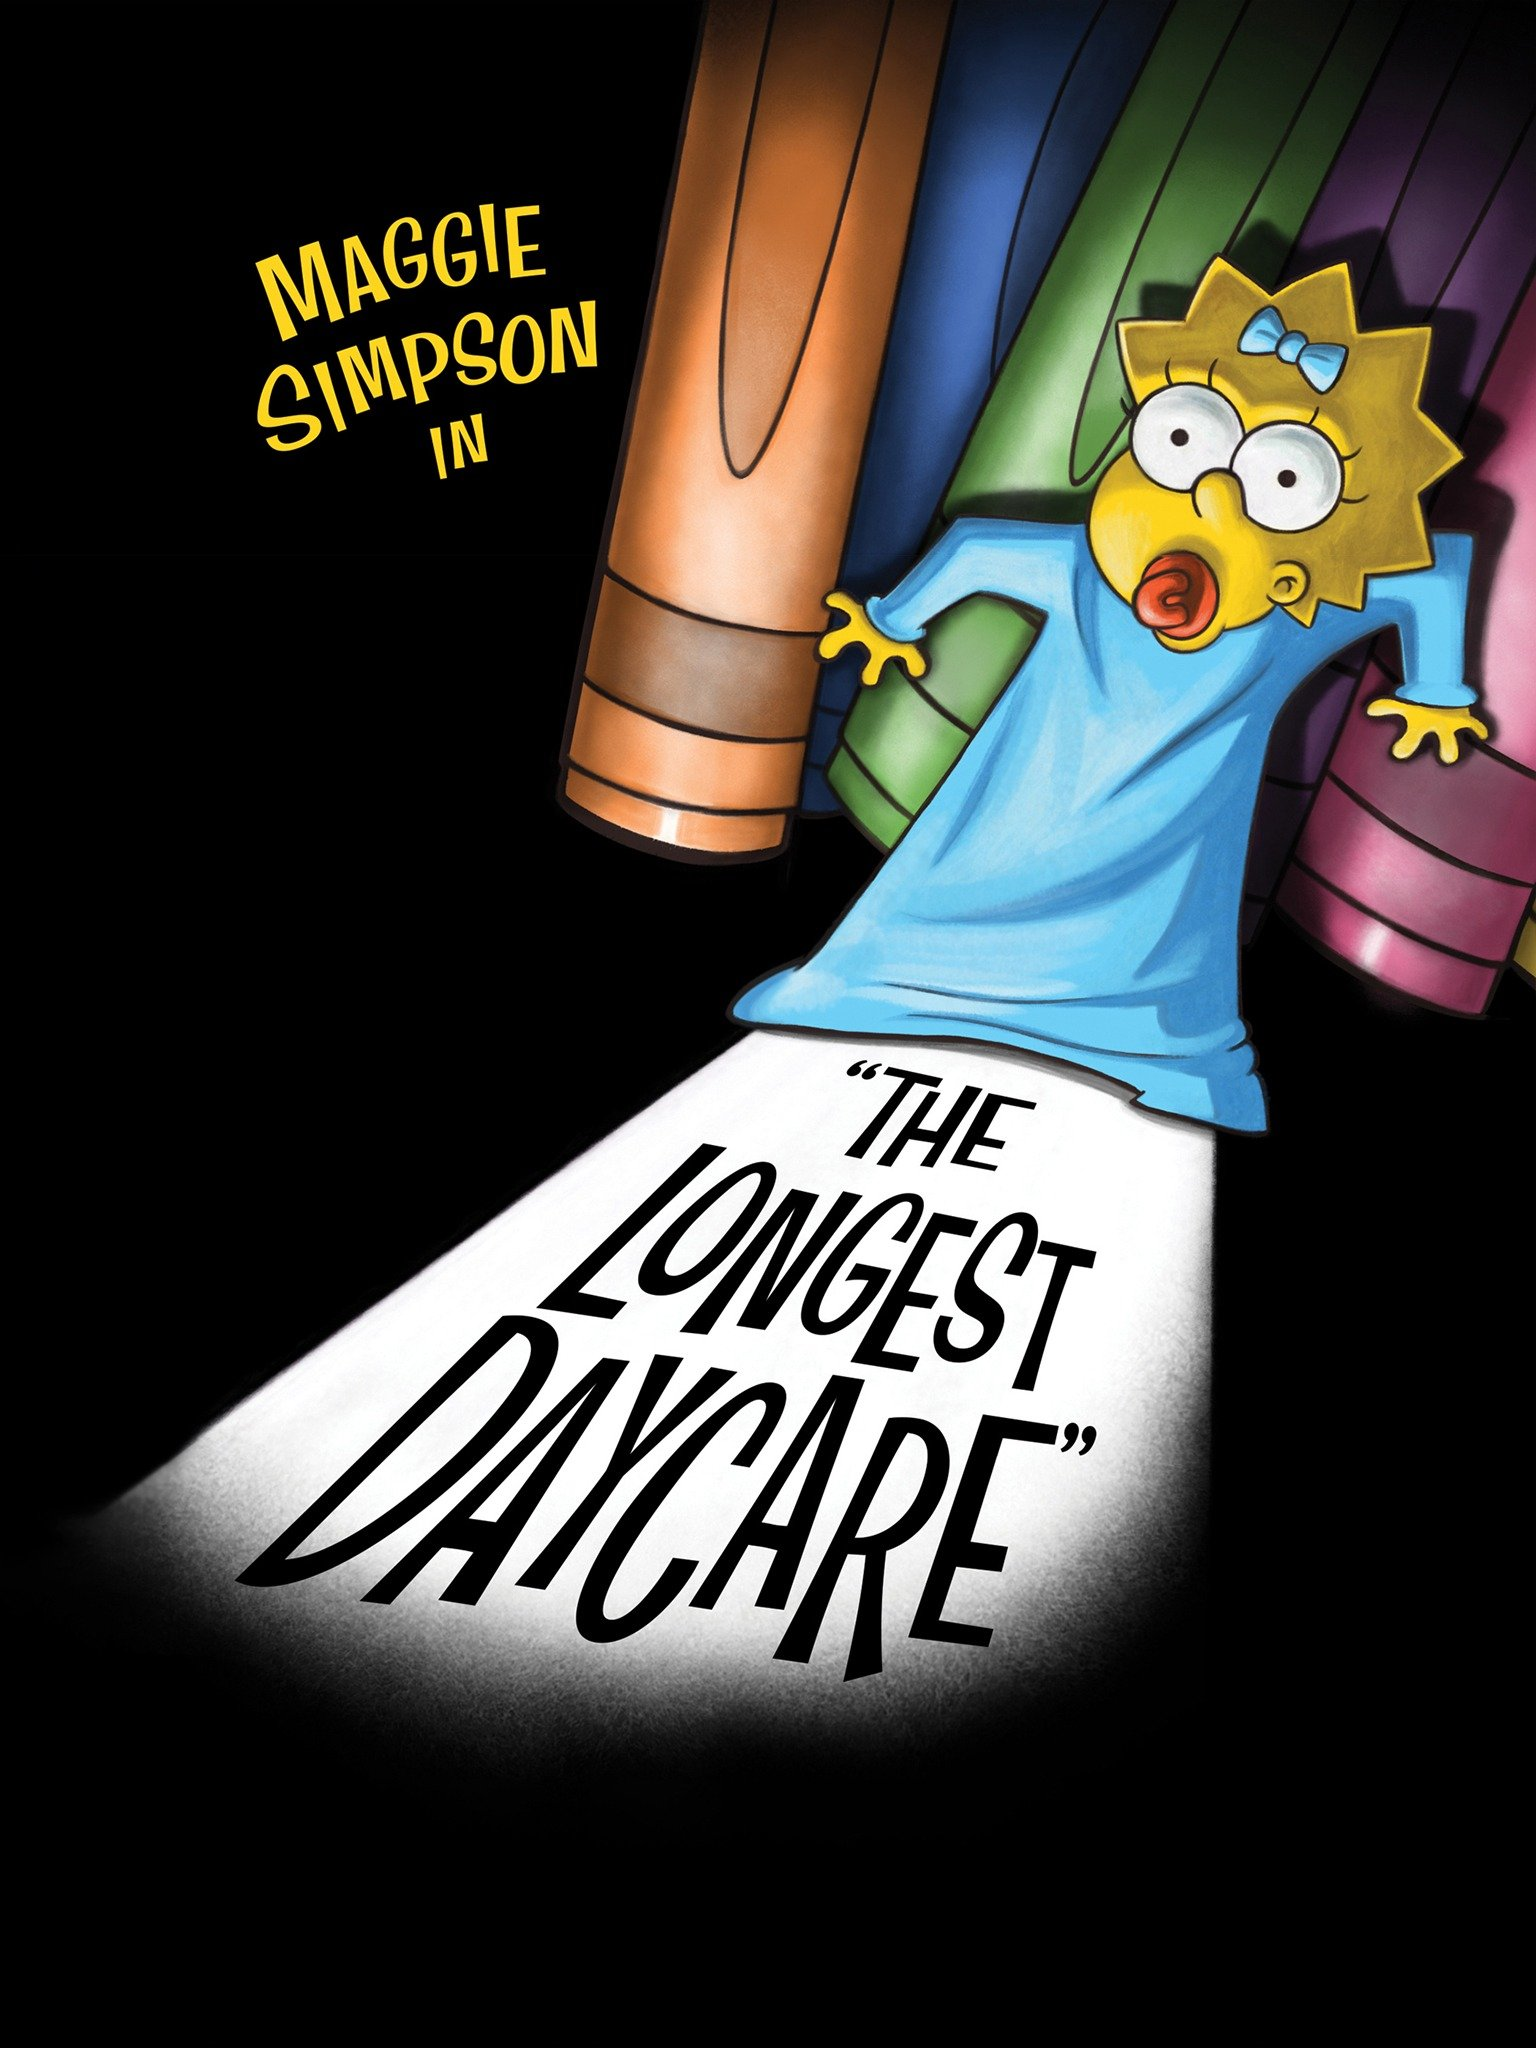 The Simpsons The Longest Daycare 2012 Rotten Tomatoes